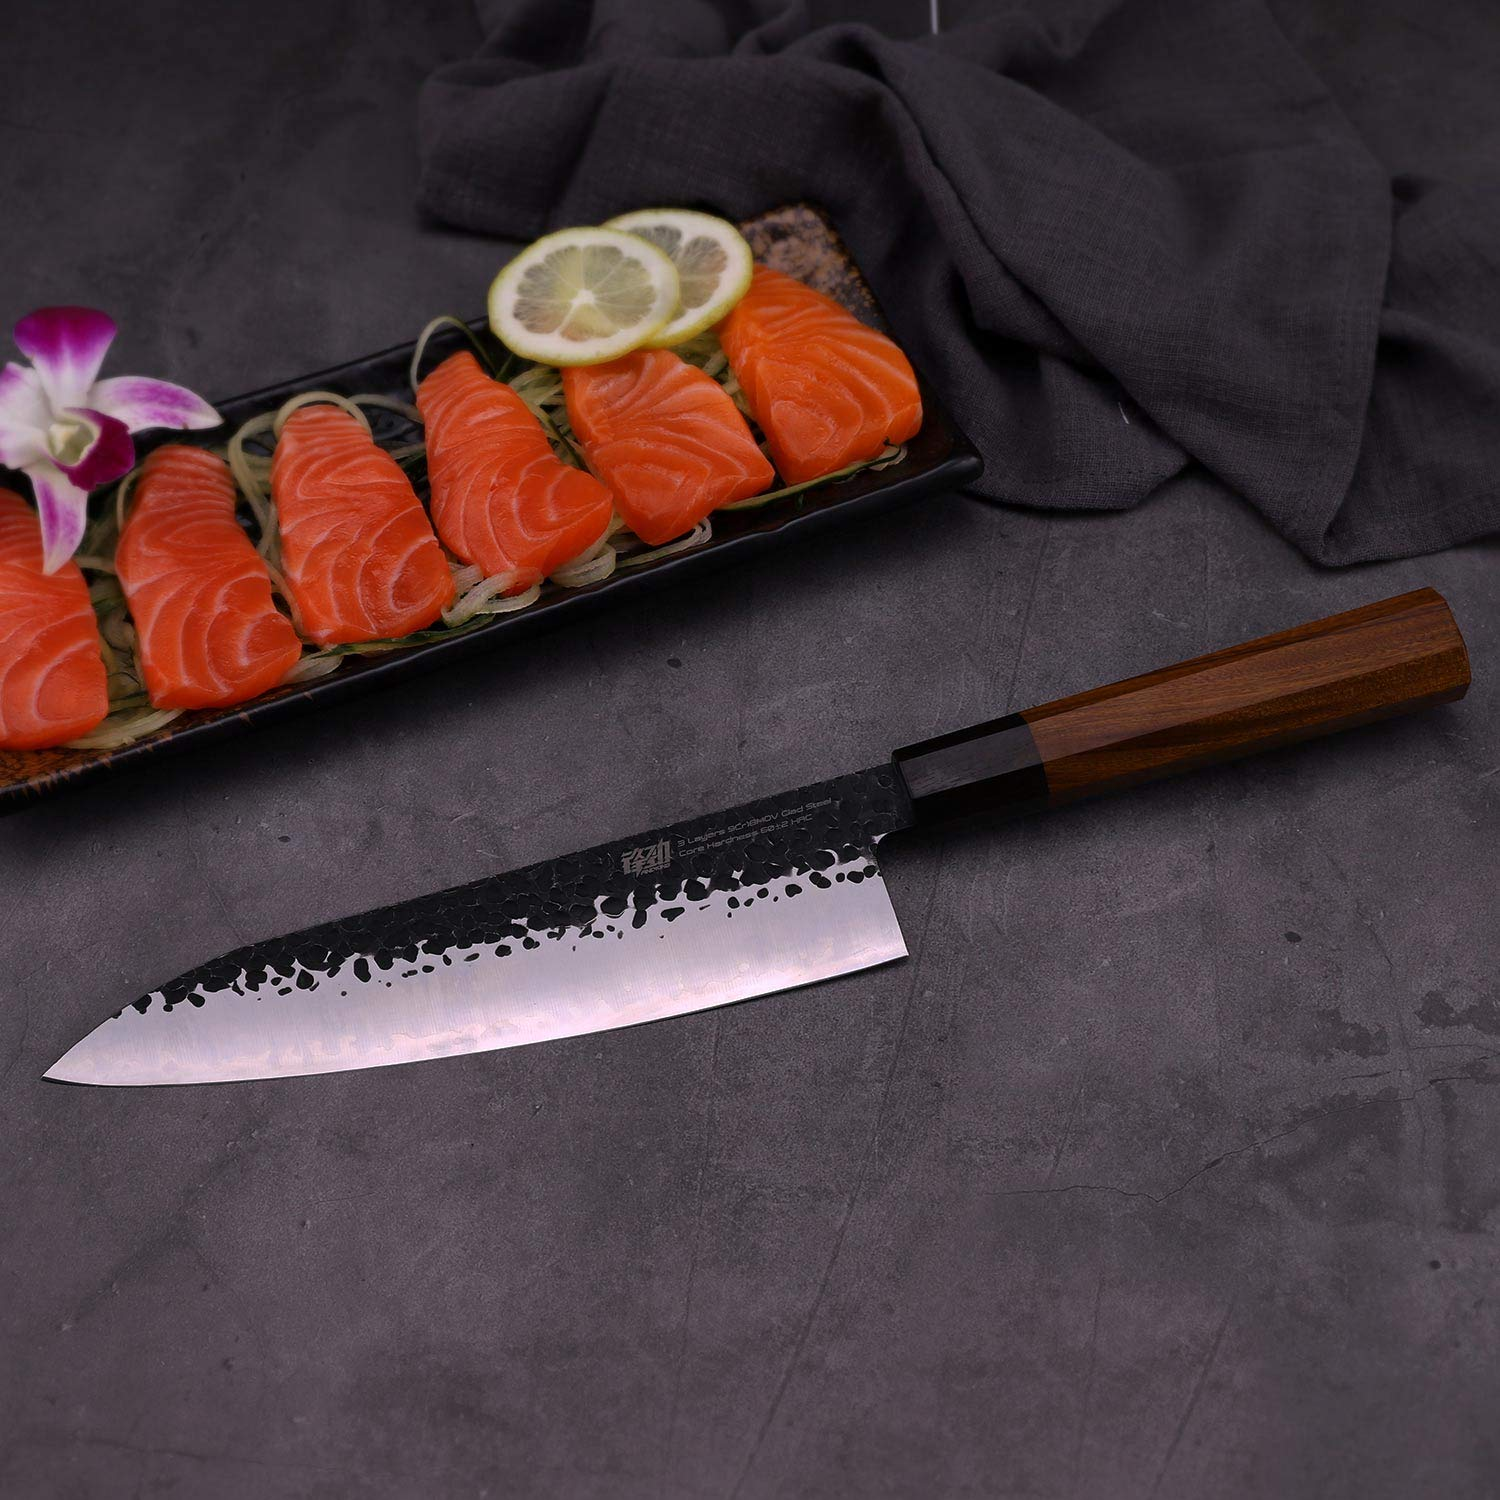 8 Inch Chef Knife by Findking-Dynasty series-3 layer 9CR18MOV clad steel w/octagon handle Gyuto Knife (8 inch chef knife) by FINDKING (Image #6)